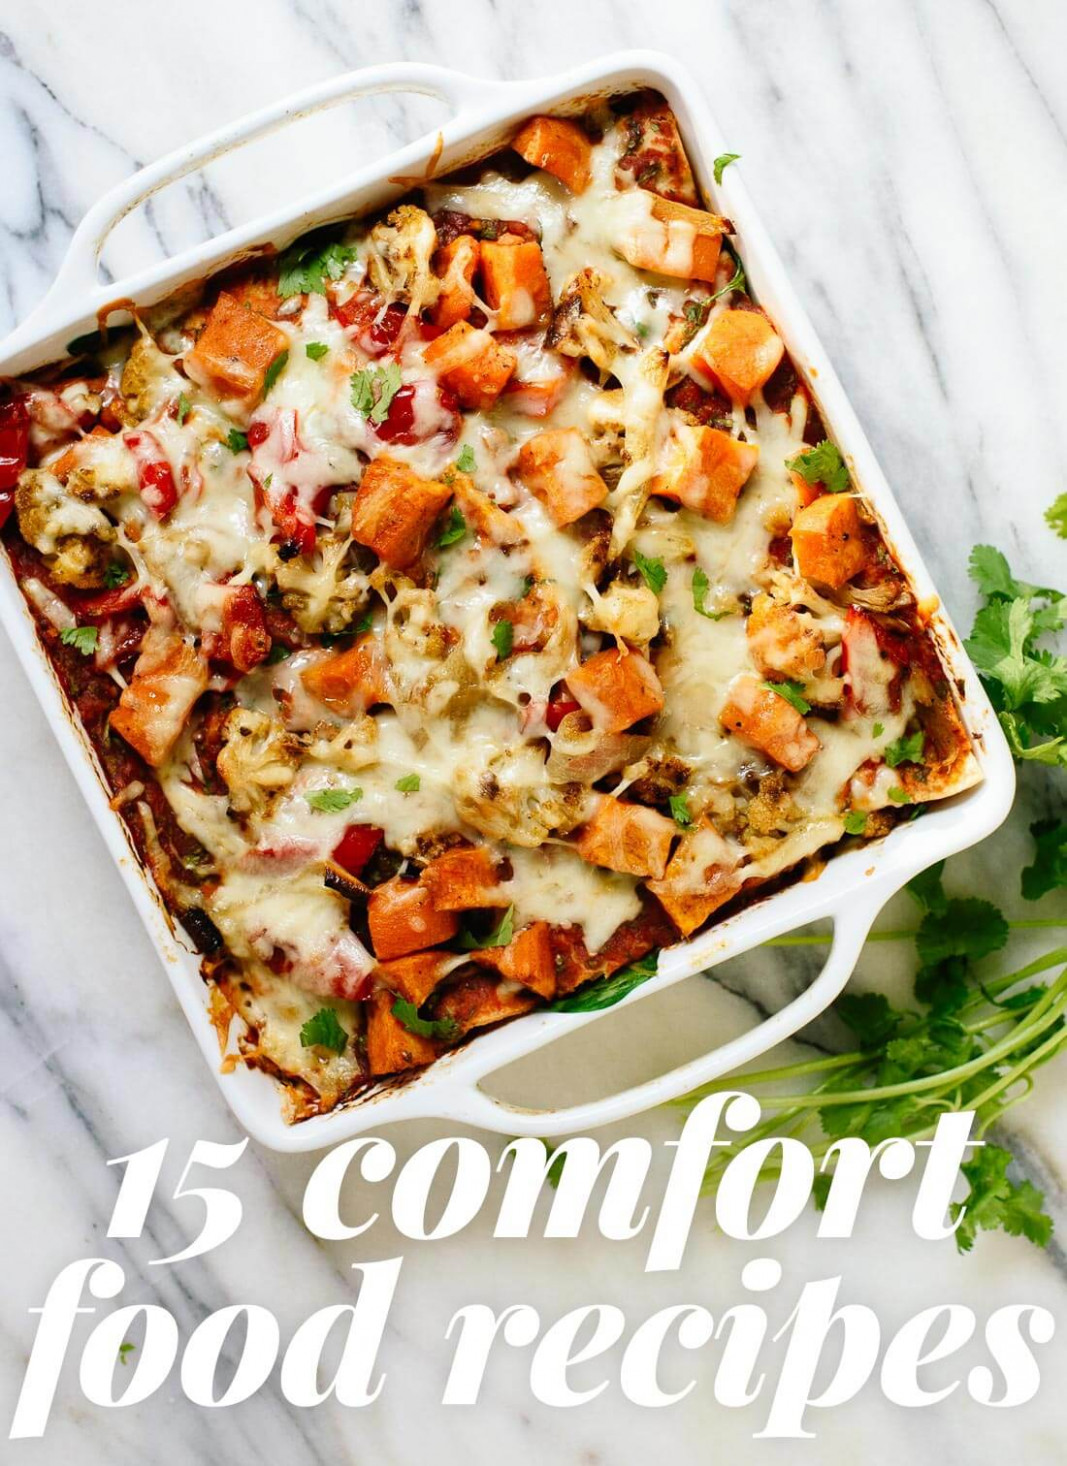 15 Healthy Comfort Food Recipes - Cookie and Kate - recipes vegetarian comfort food